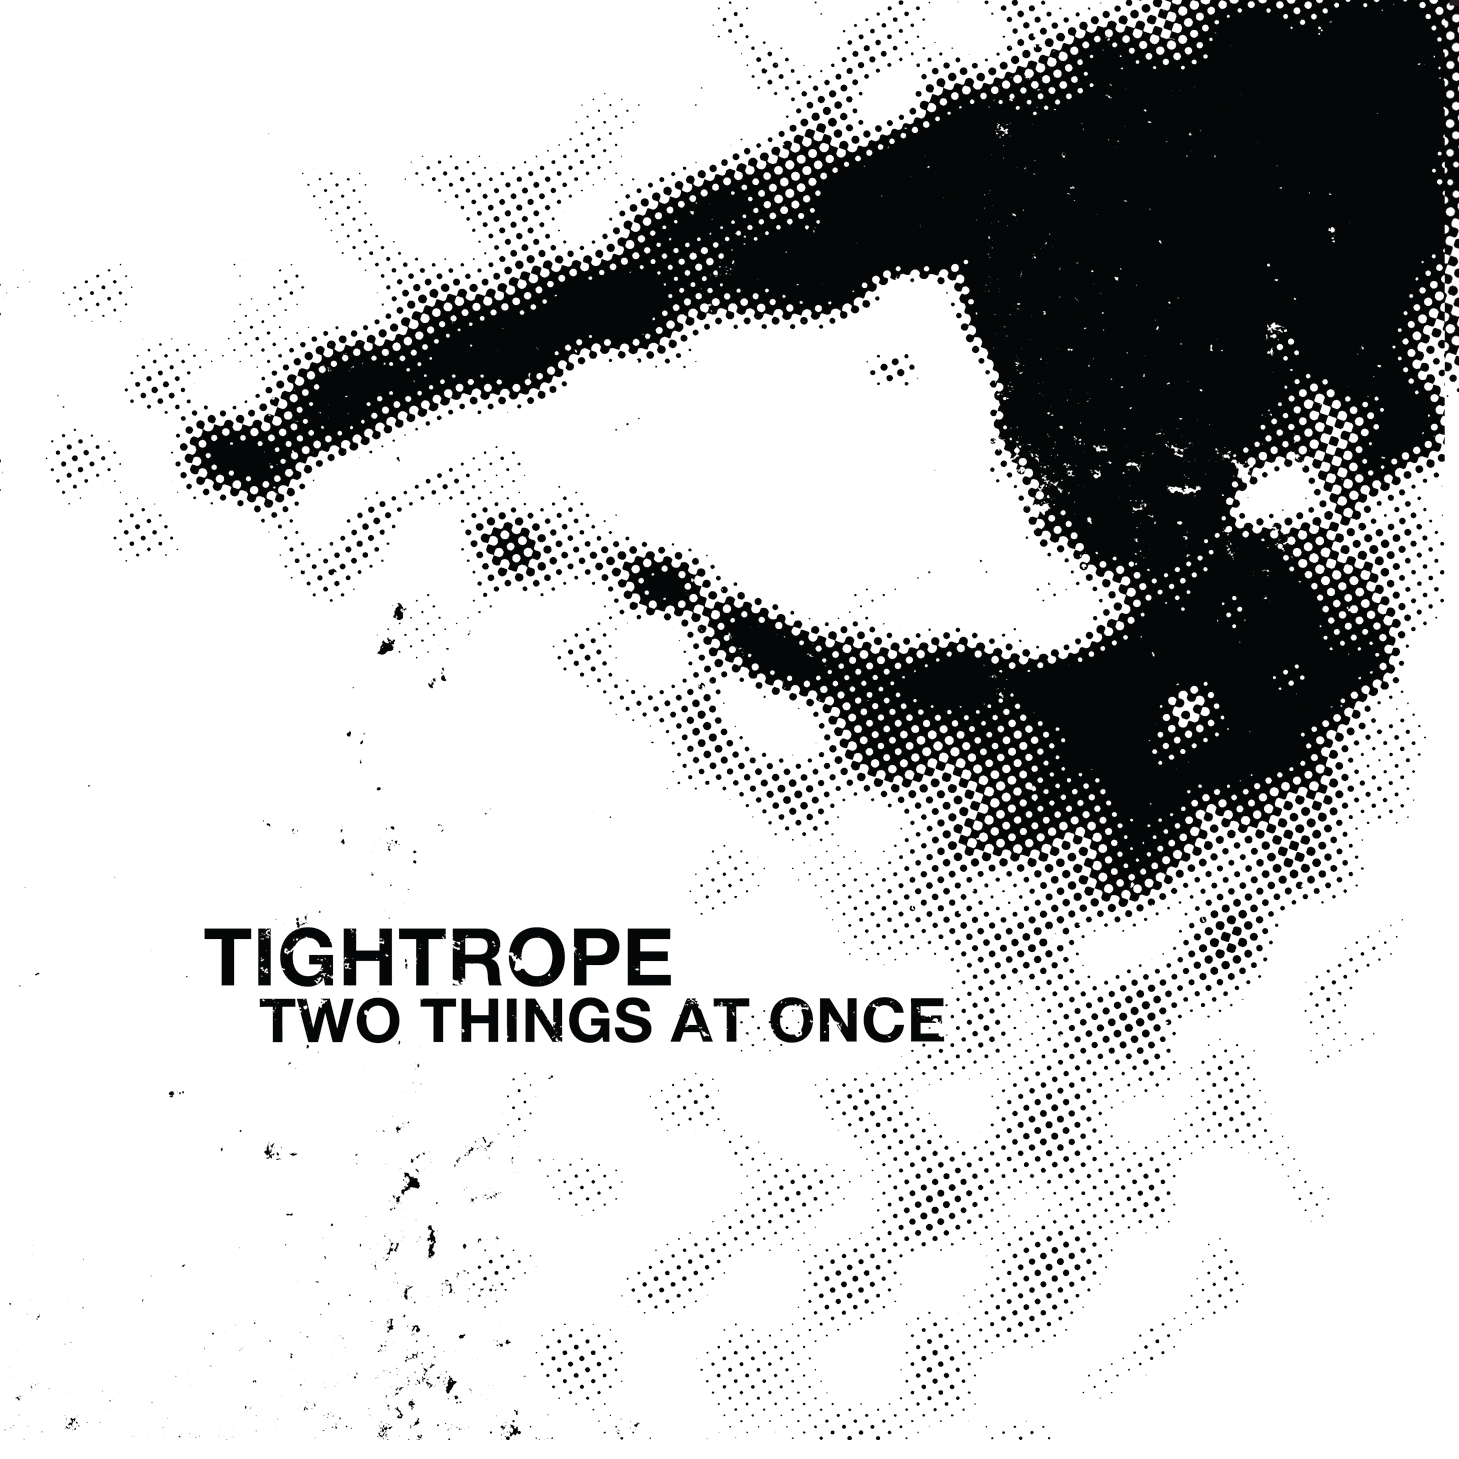 Tightrope - two things at once